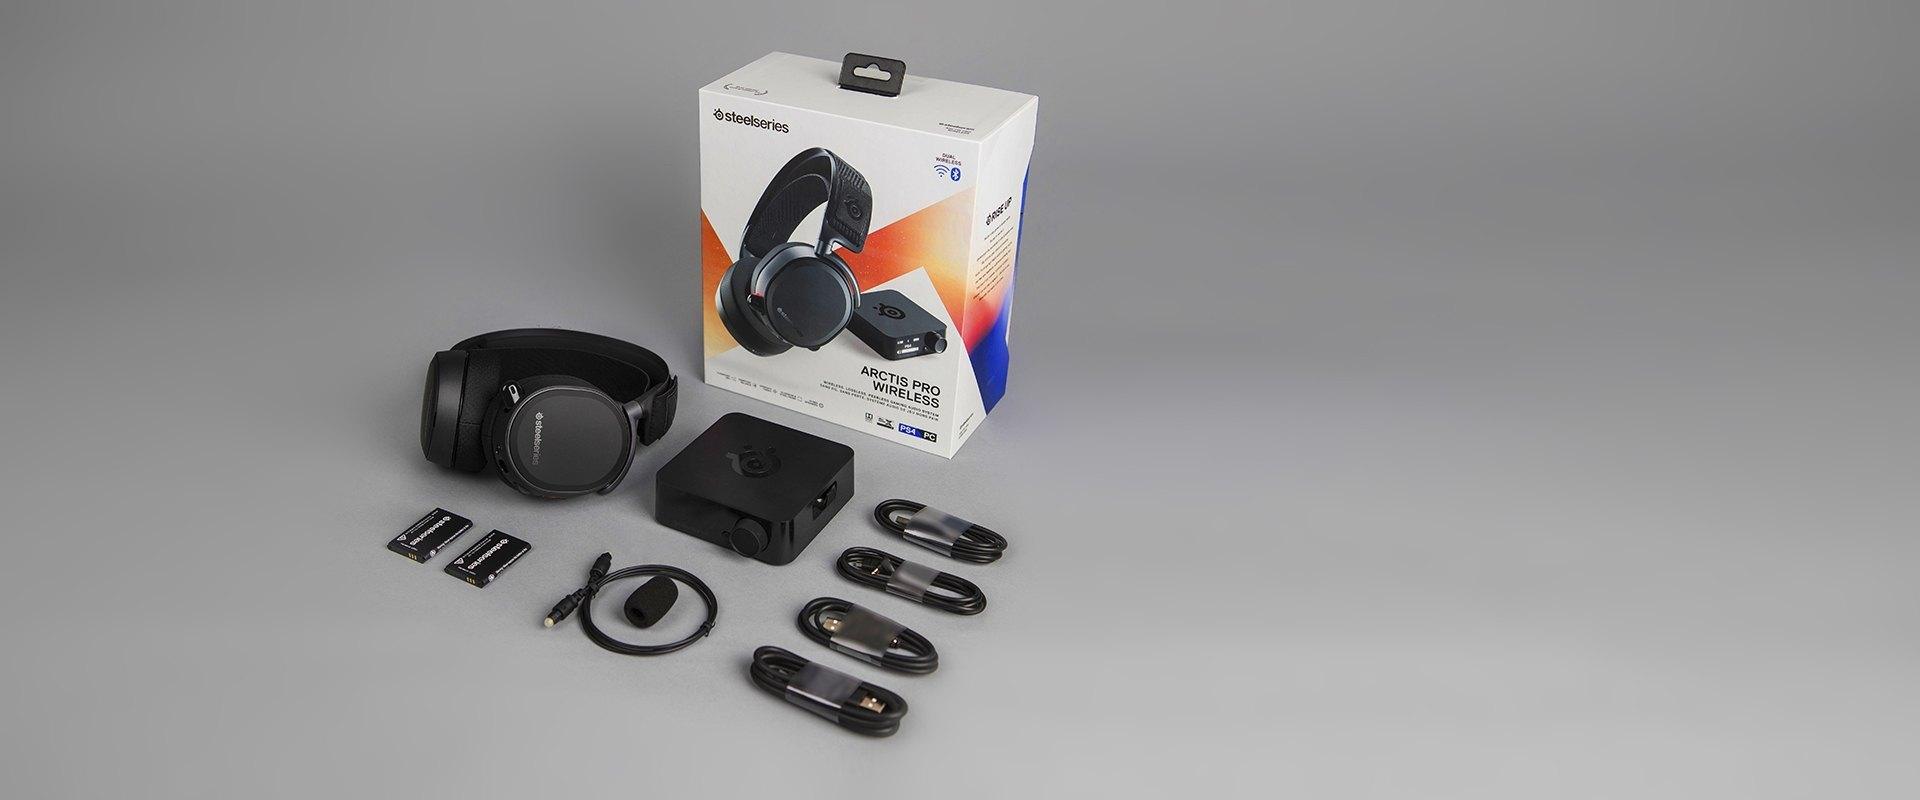 The exterior packaging and box contents for the Arctis Pro Wireless